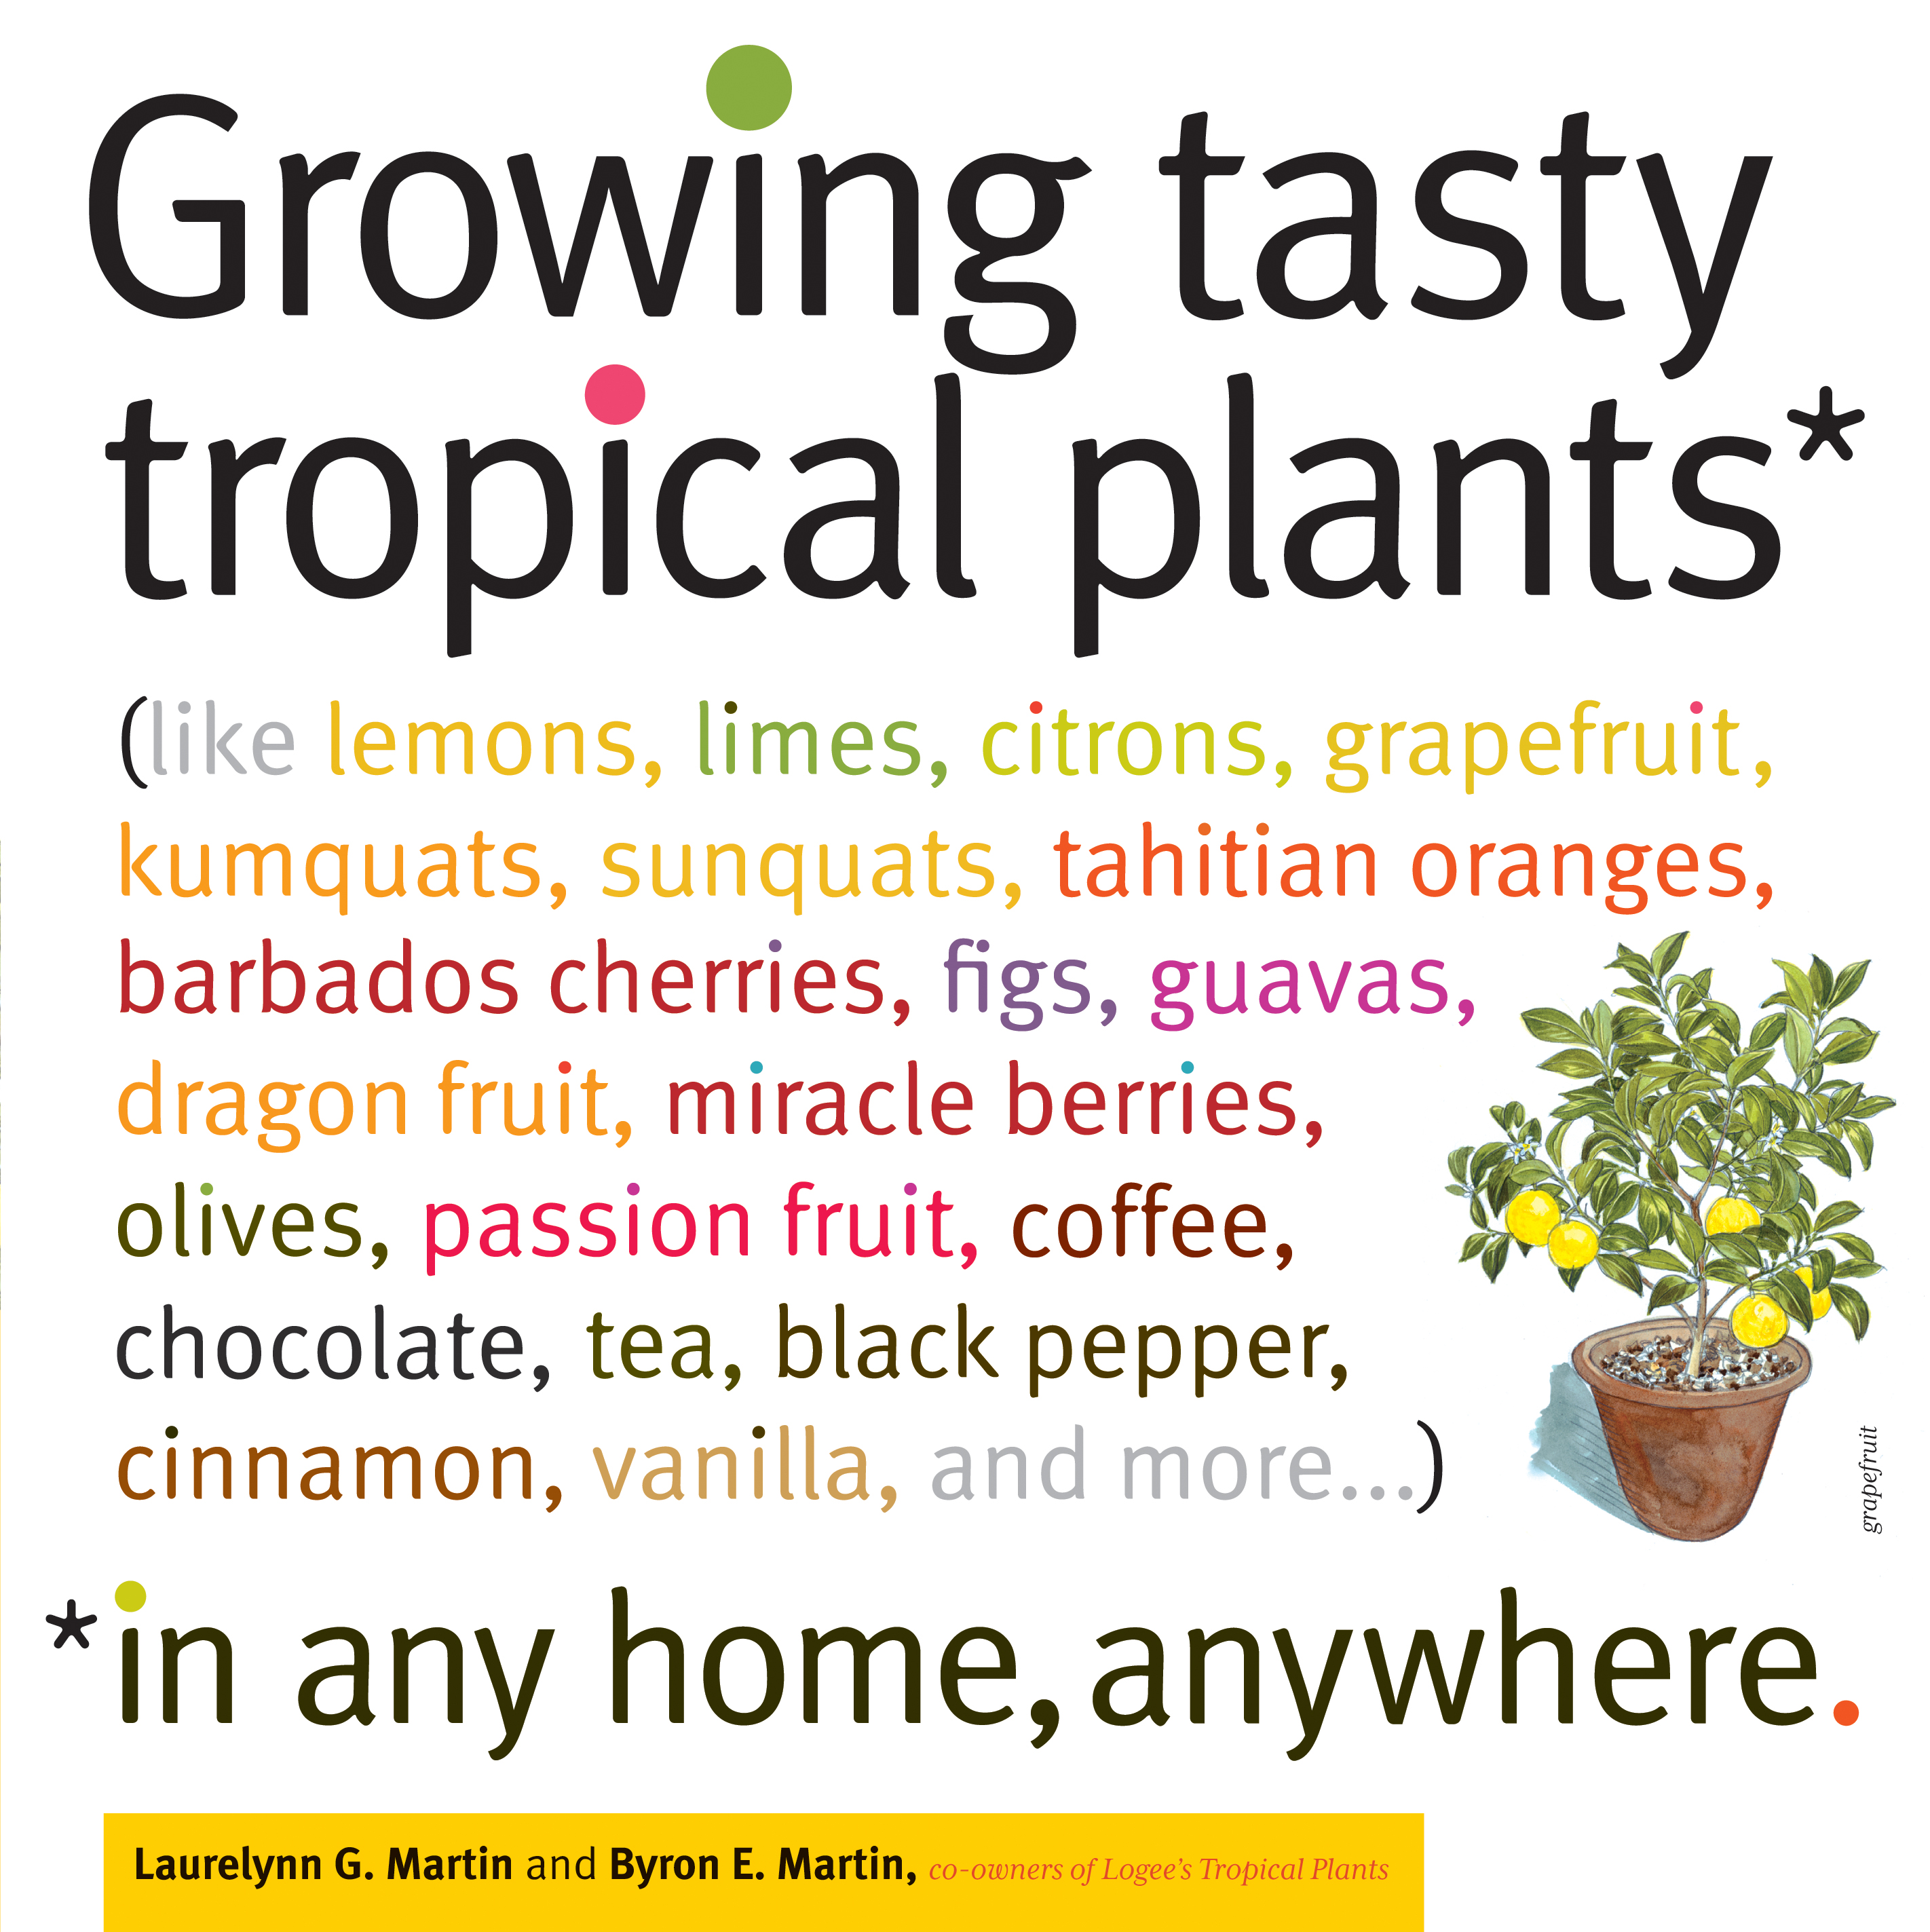 Growing Tasty Tropical Plants in Any Home, Anywhere (like lemons, limes, citrons, grapefruit, kumquats, sunquats, tahitian oranges, barbados cherries, figs, guavas, dragon fruit, miracle berries, olives, passion fruit, coffee, chocolate, tea, black pepper, cinnamon, vanilla, and more...) - Byron E. Martin